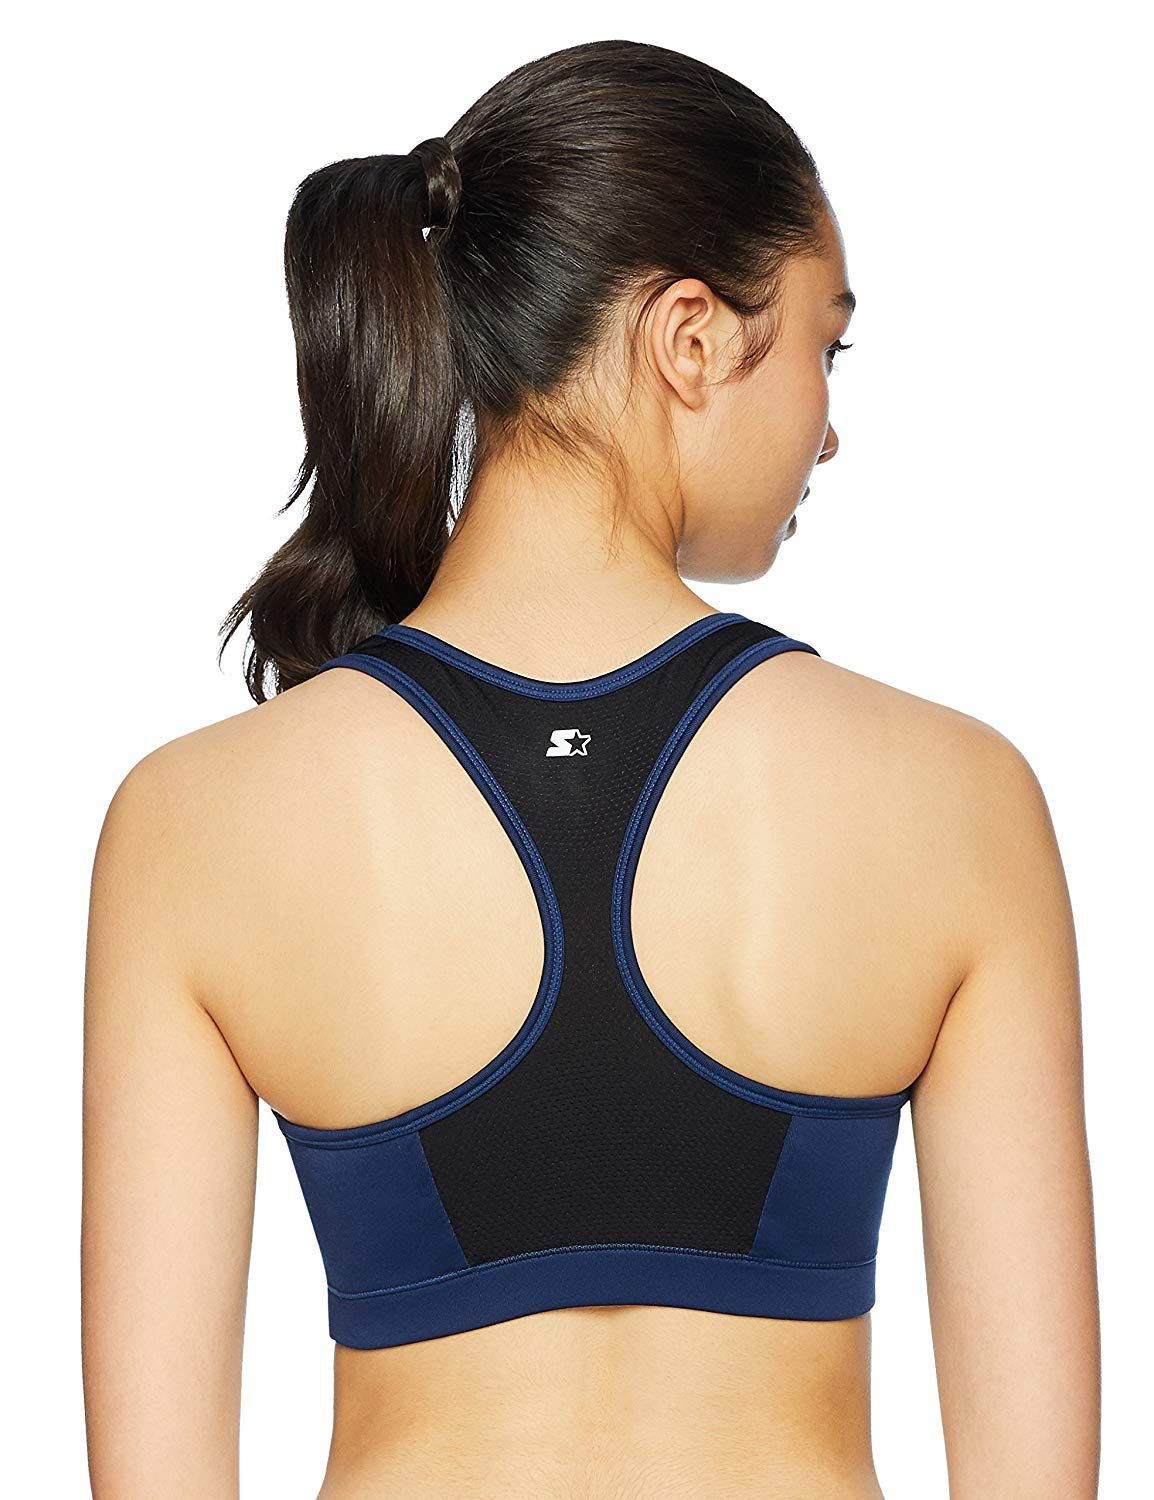 eb346c2ed9 Amazon.com  Starter Women s Medium Impact Mesh Panel Sports Bra ...